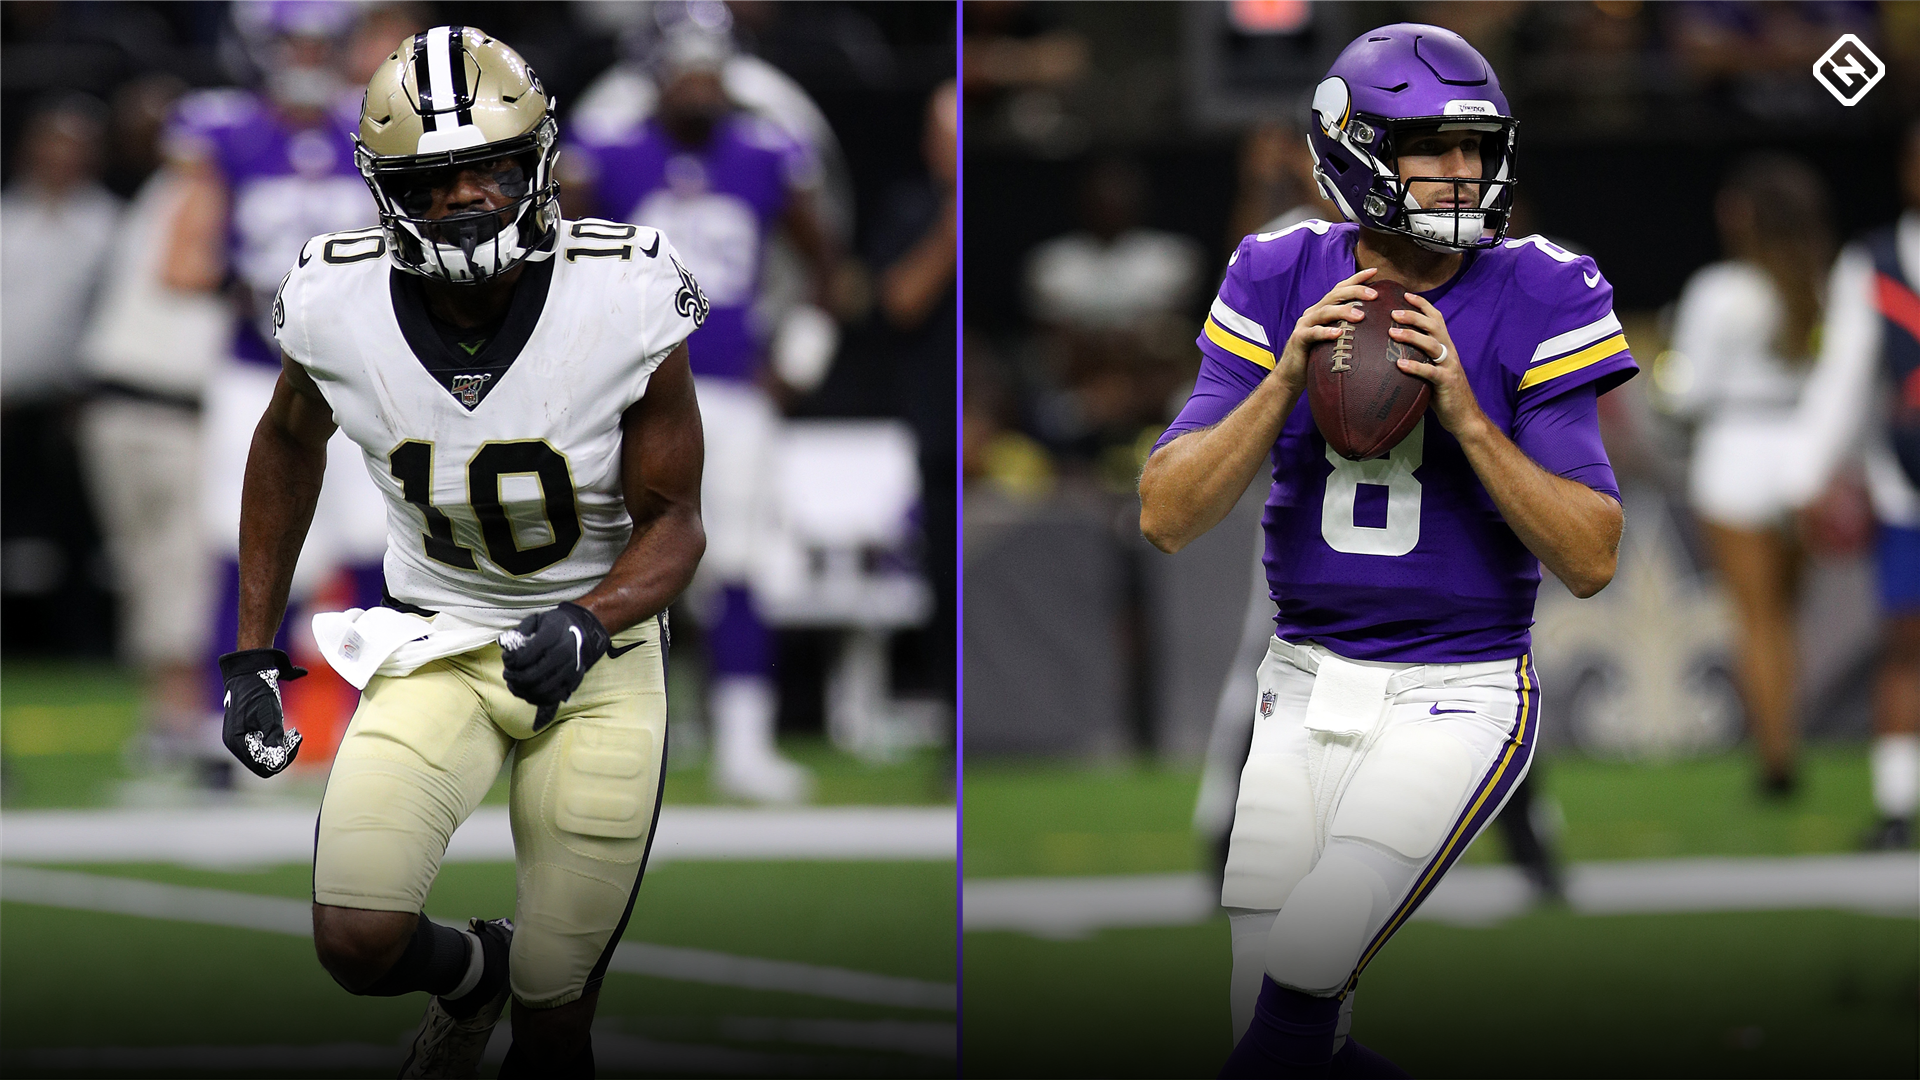 2019 Fantasy Football All-Sleeper Team: Top breakouts, undervalued players in rankings